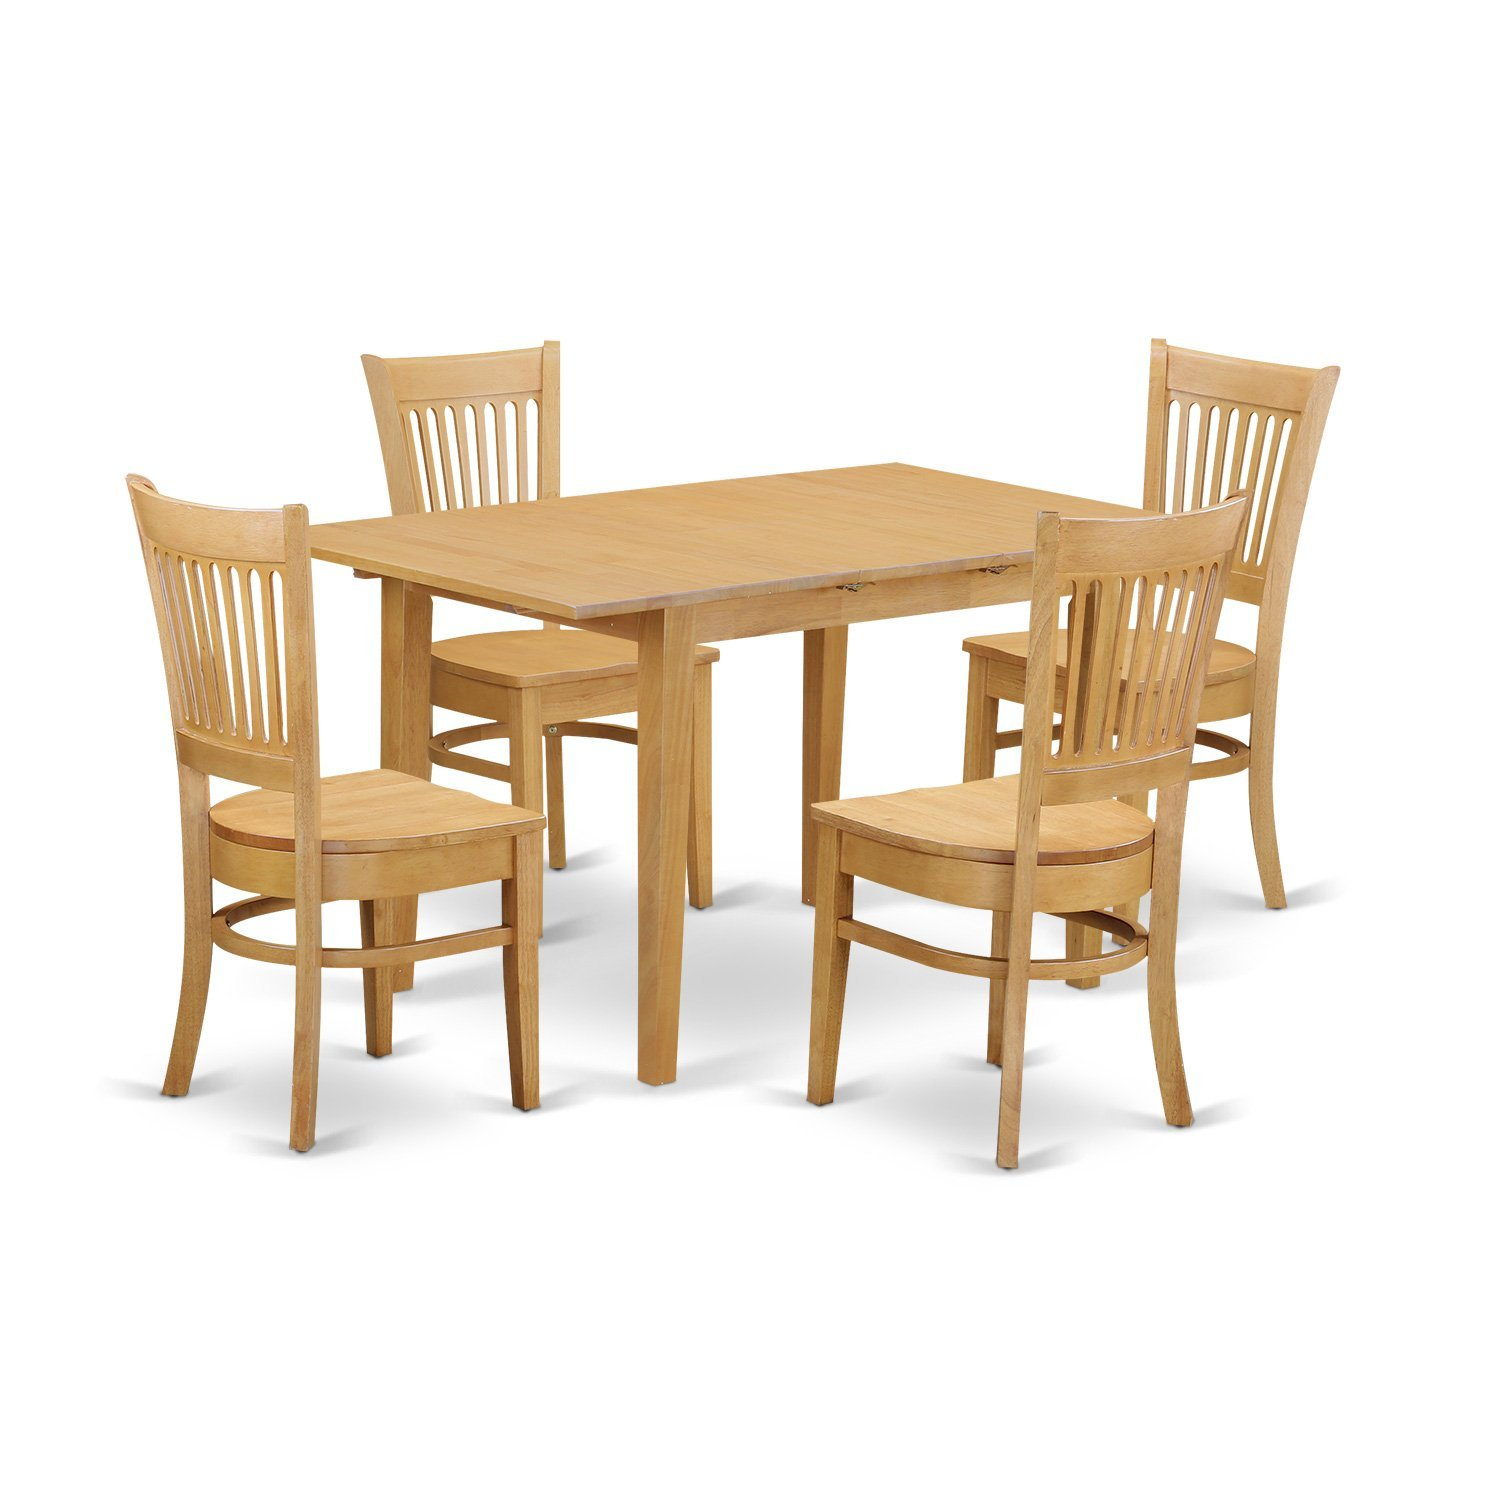 Cheap 5 Piece Dining Set: Best Rated In Kitchen & Dining Room Sets & Helpful